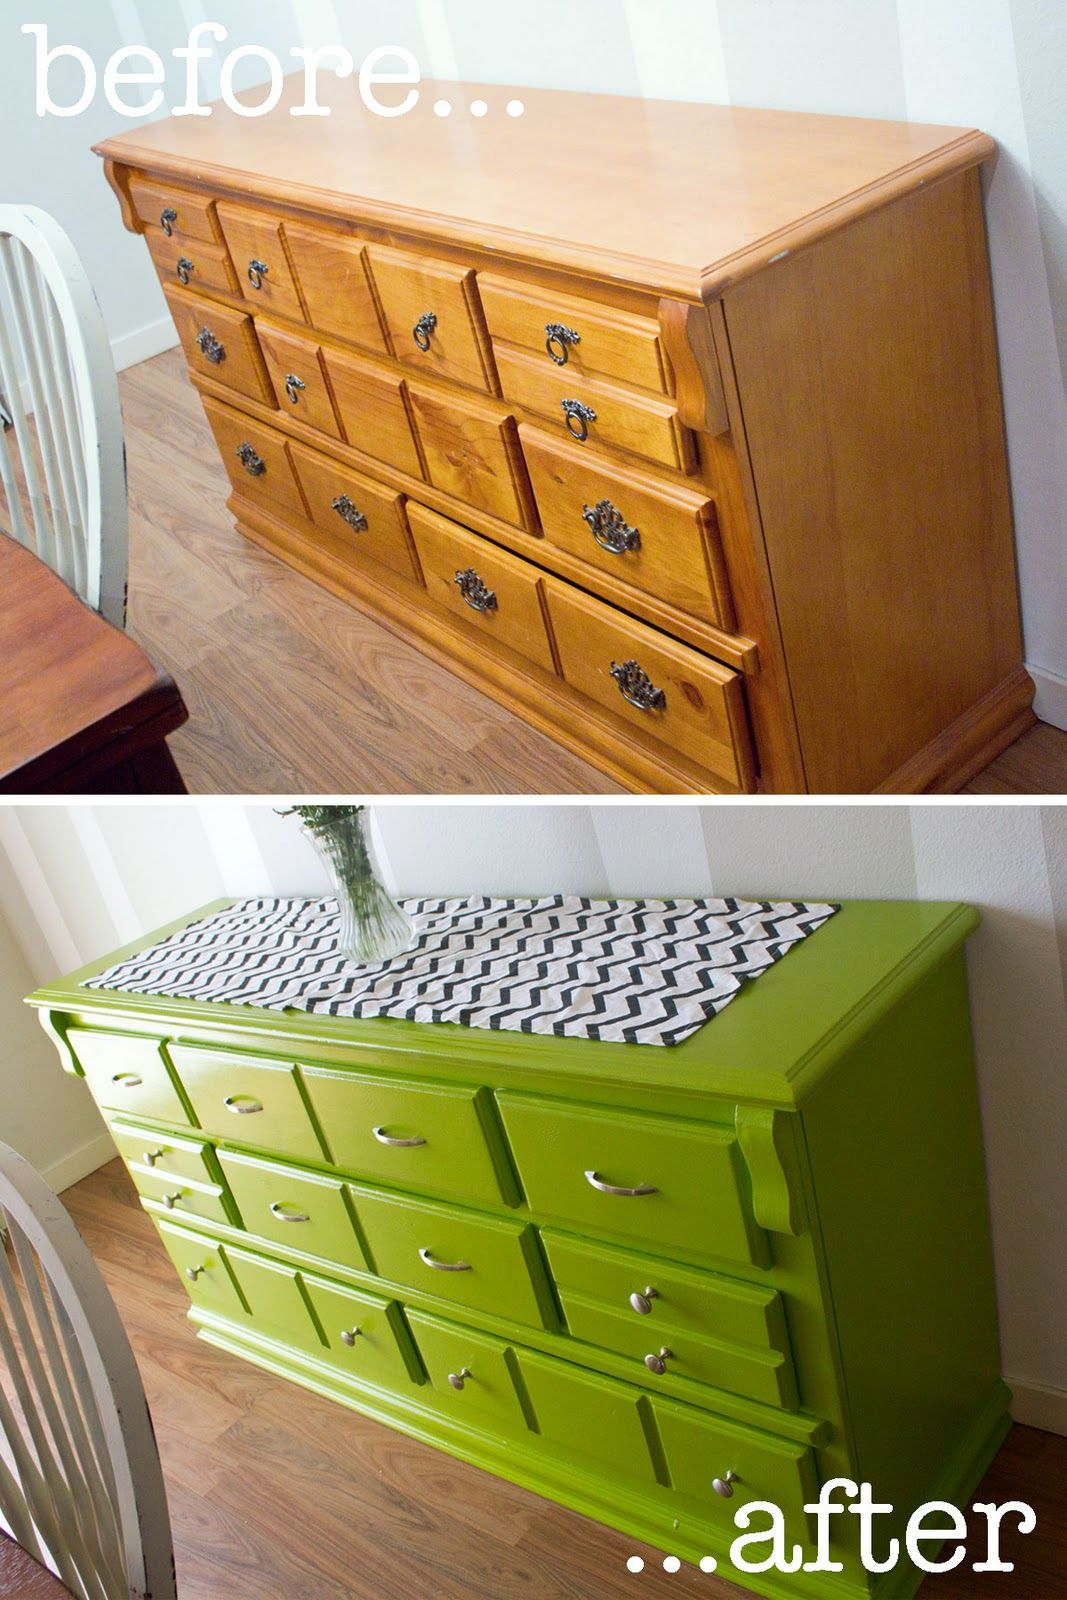 Refinish Chest In Playroom How To Furniture Without Sanding So Glad I Found This